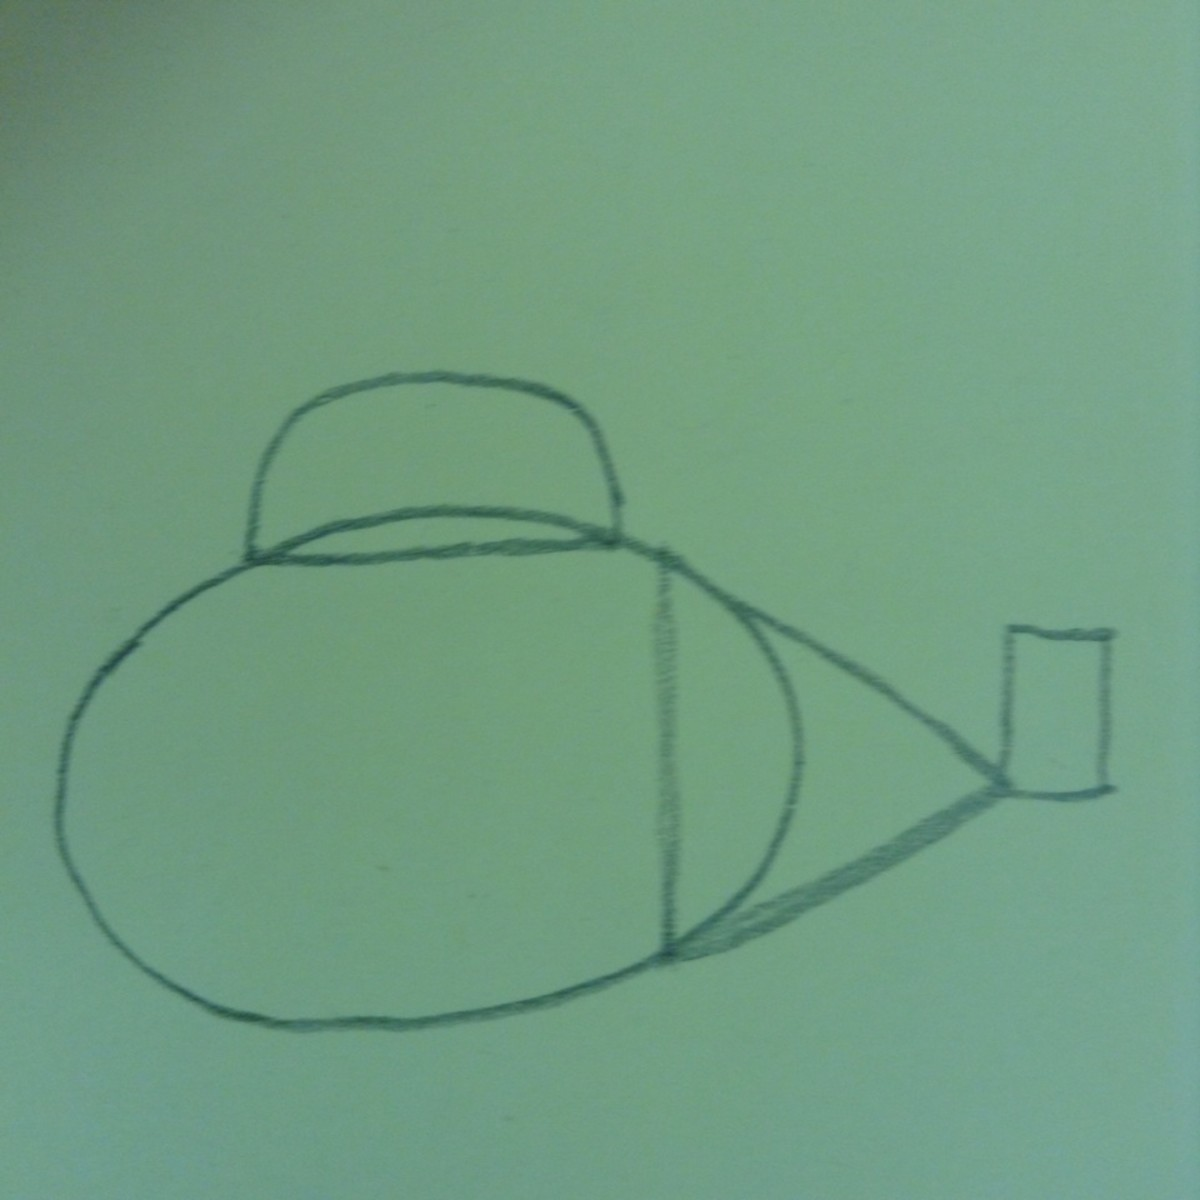 Step 4. Draw a semi-circle overlapping the top of the oval.